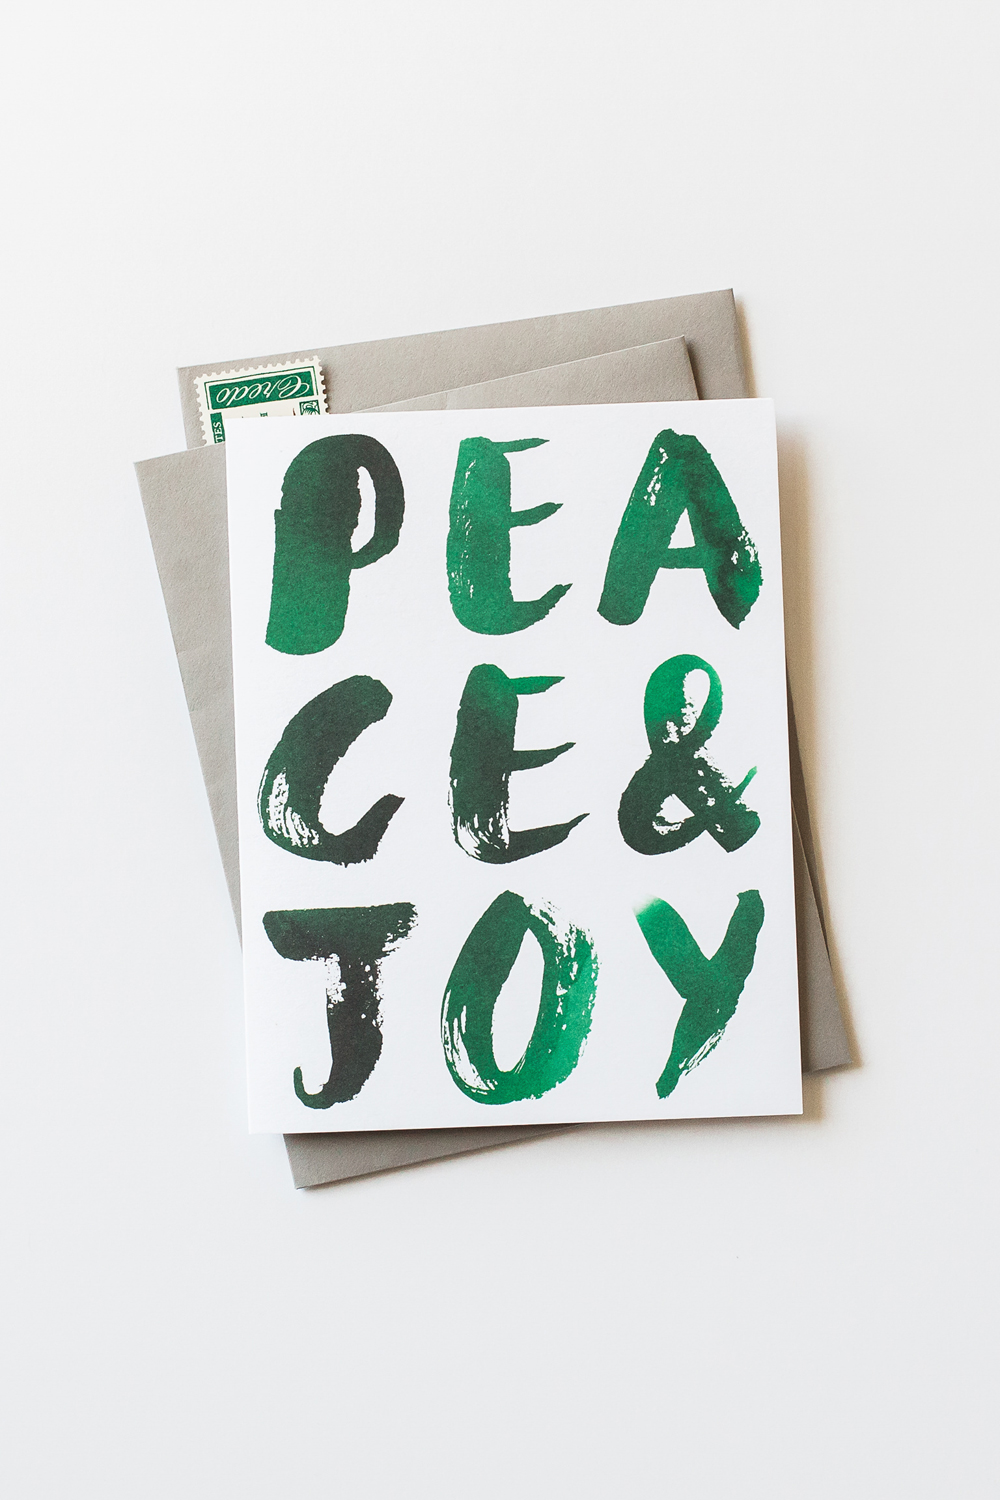 fc160-peace-&-joy-stamps.jpg